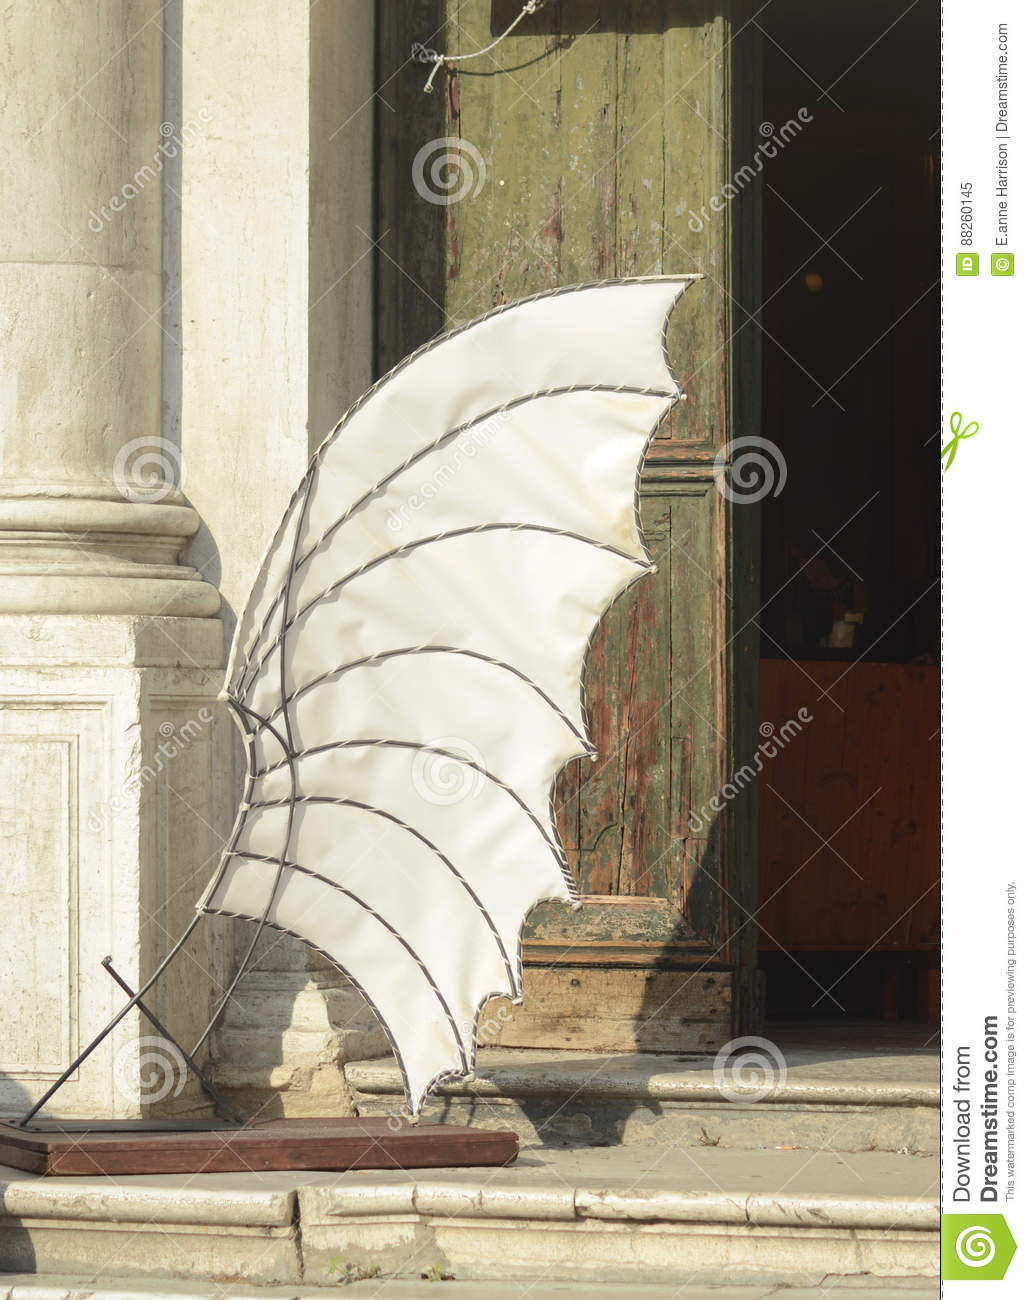 A model of a wing outside a building in Venice.